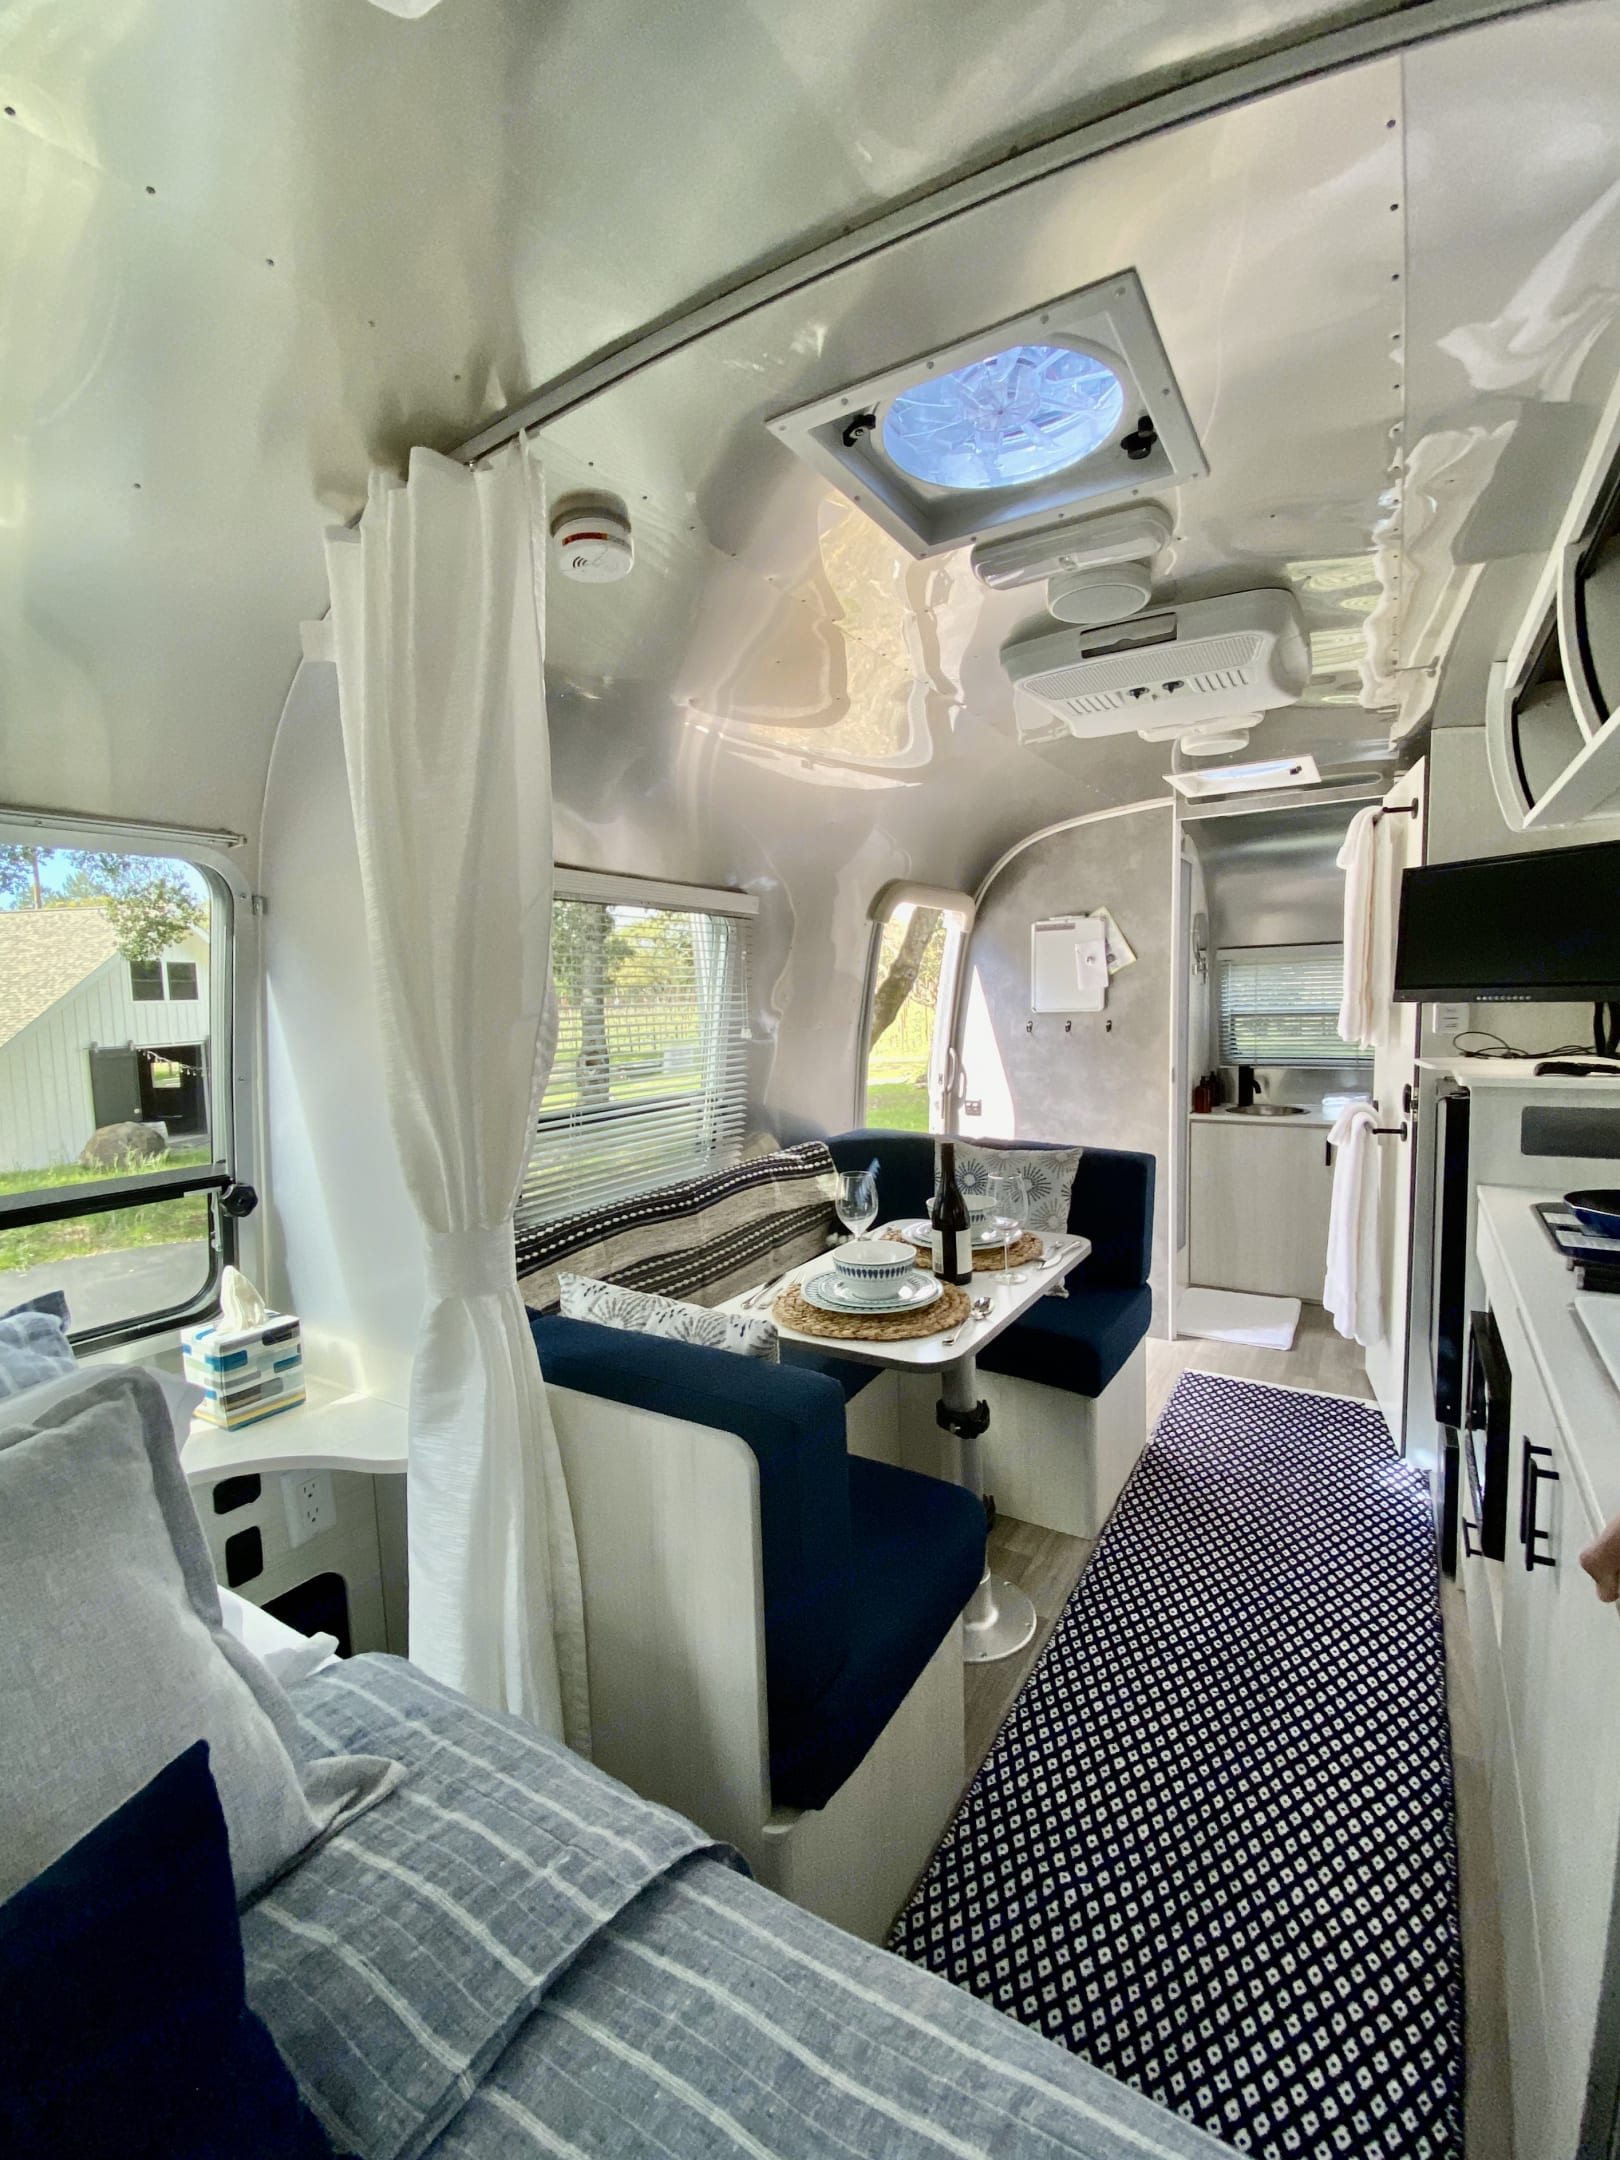 Dinette area for 4 converts to sleeping perfect for 2 small children. Airstream Bambi 2020